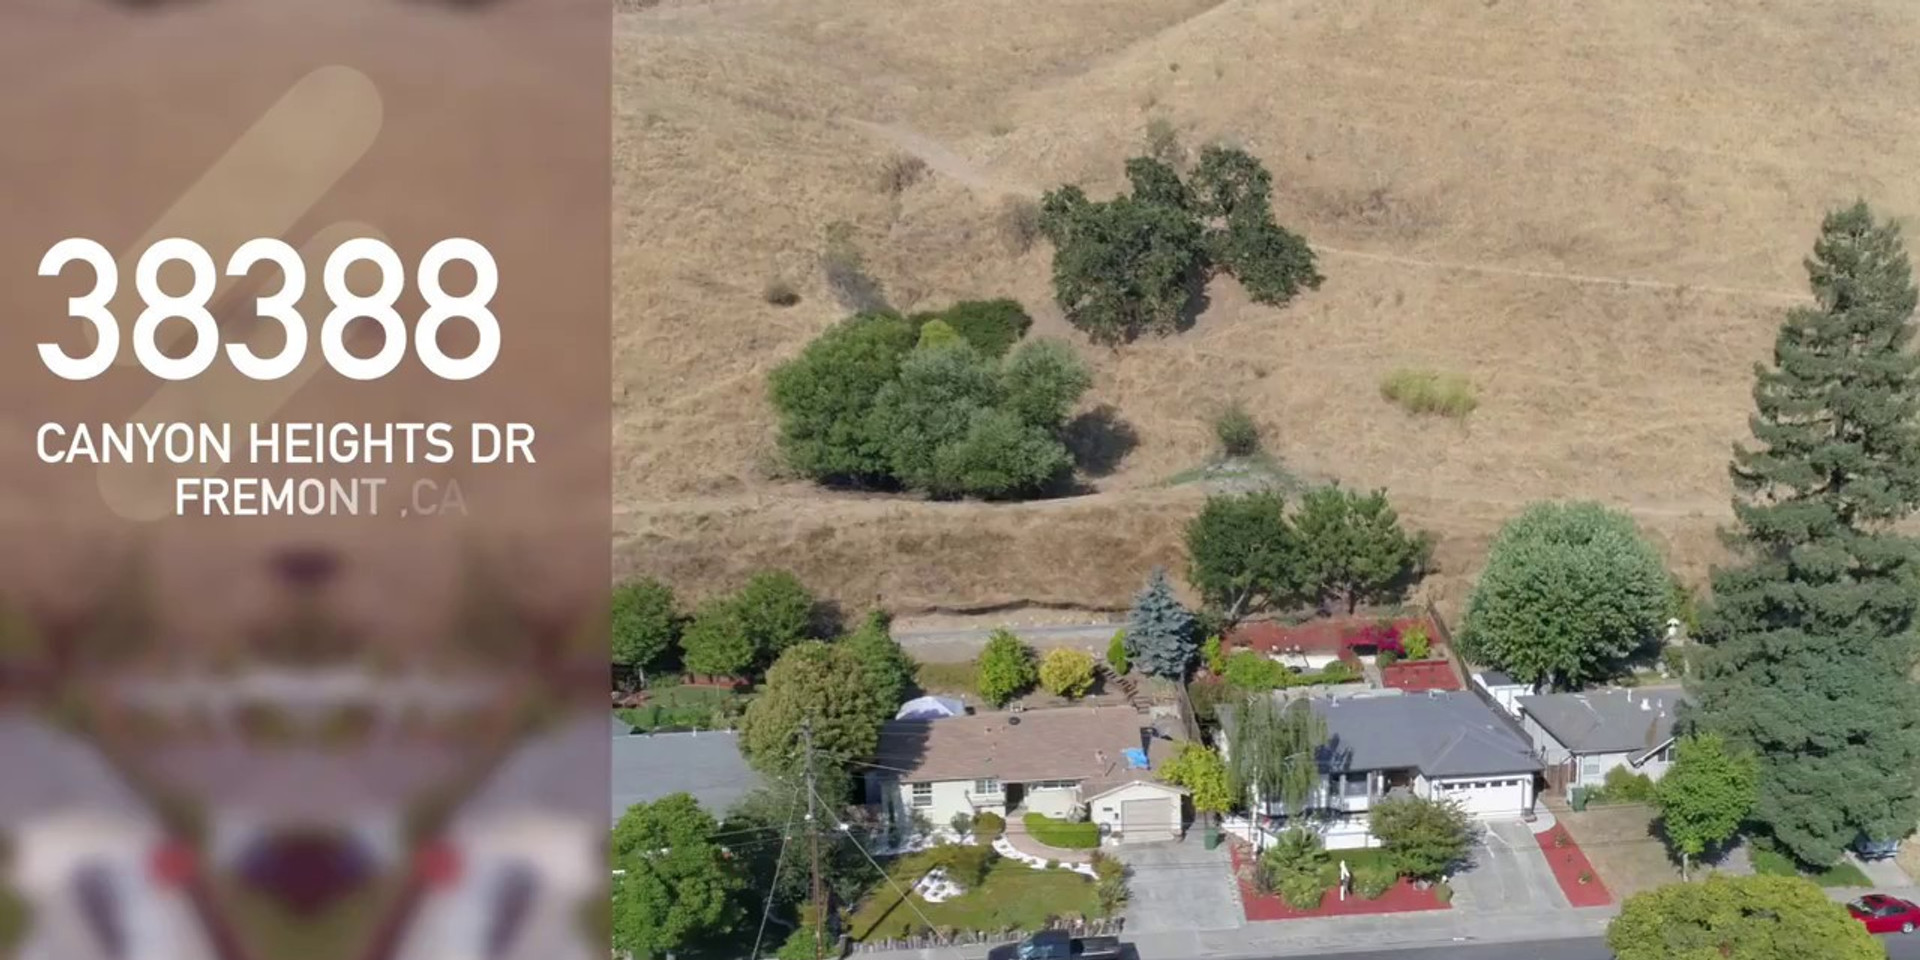 38388 Canyon Heights Dr,Fremont